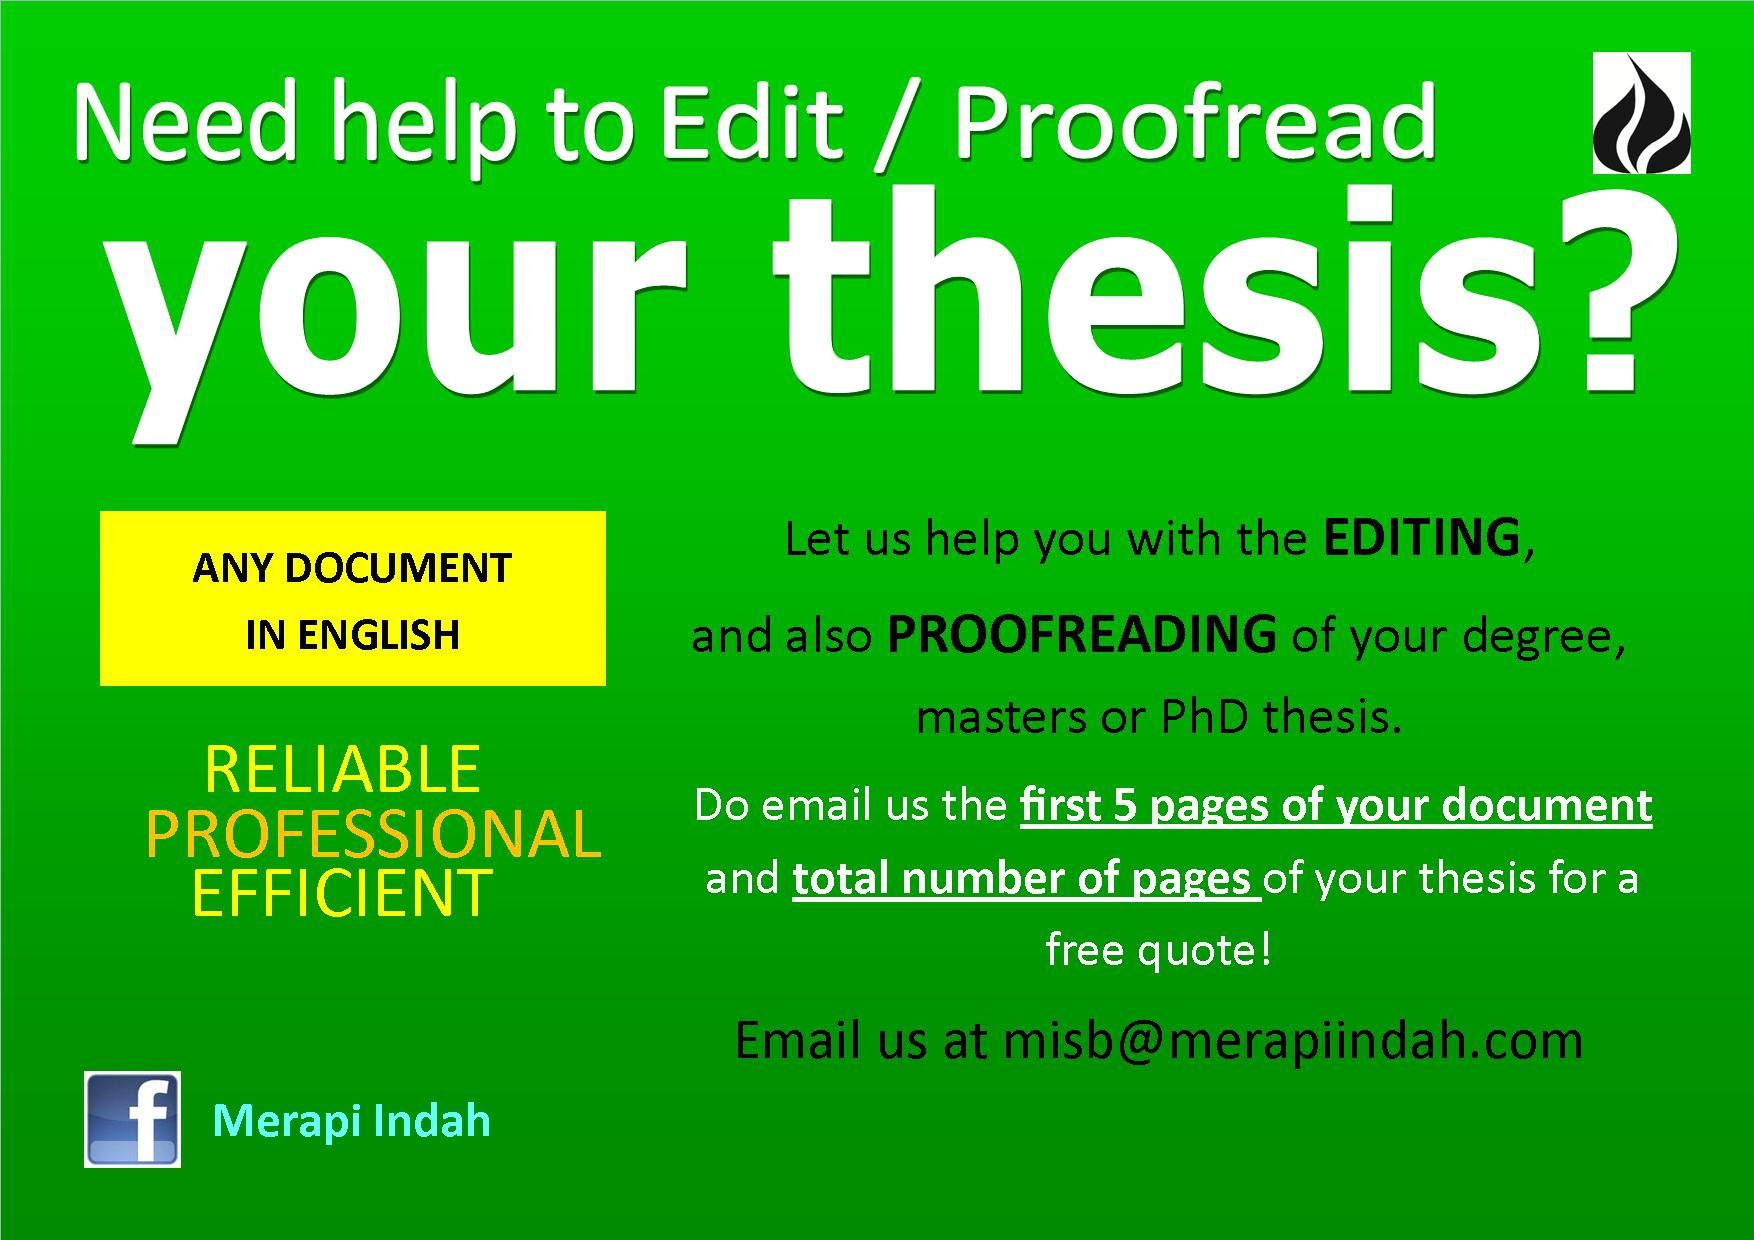 019 Essay Example Editor Misb Editing Proofreading Flyer Thesis Marvelous Free Service Corrector Generator Job